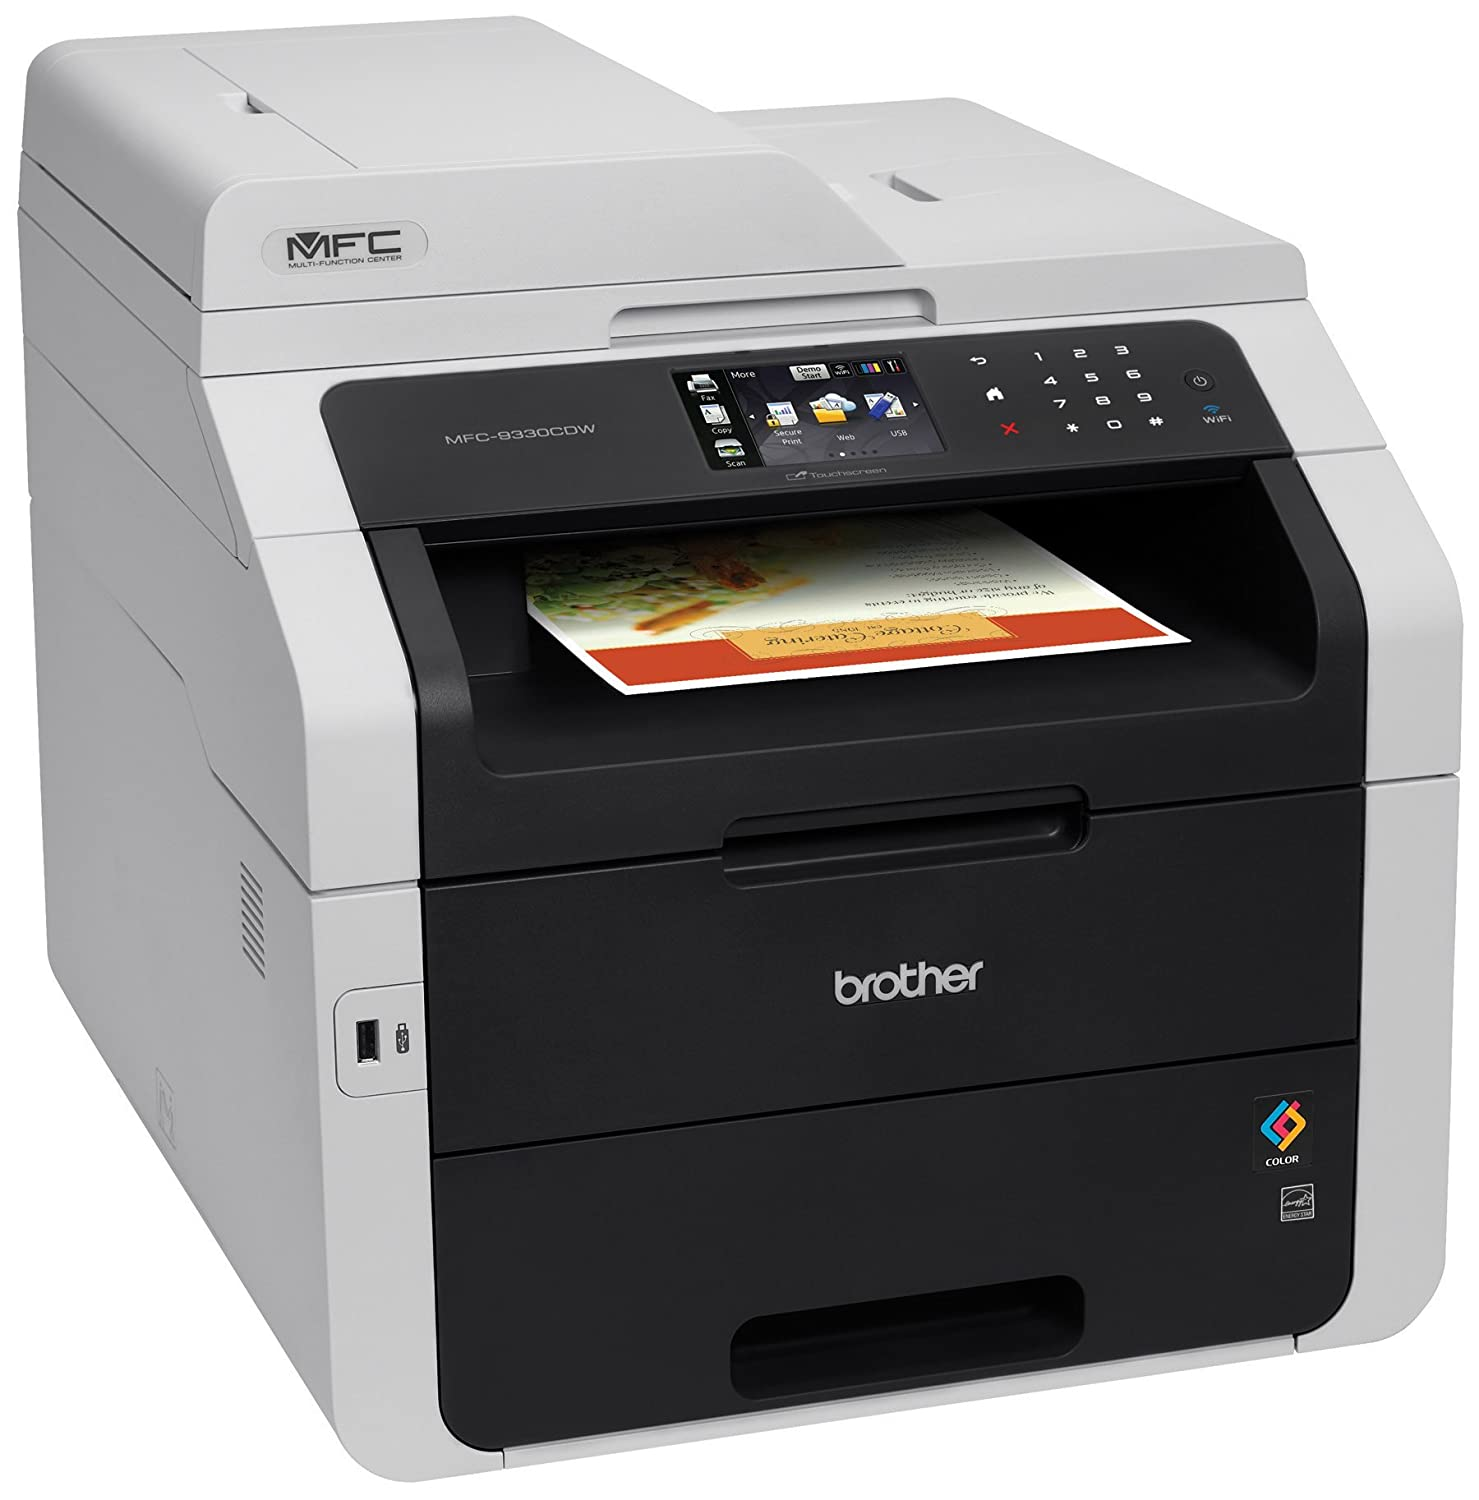 Color printouts in hyderabad - Amazon Com Brother Wireless All In One Color Printer With Scanner Copier And Fax Mfc9330cdw Amazon Dash Replenishment Enabled Electronics